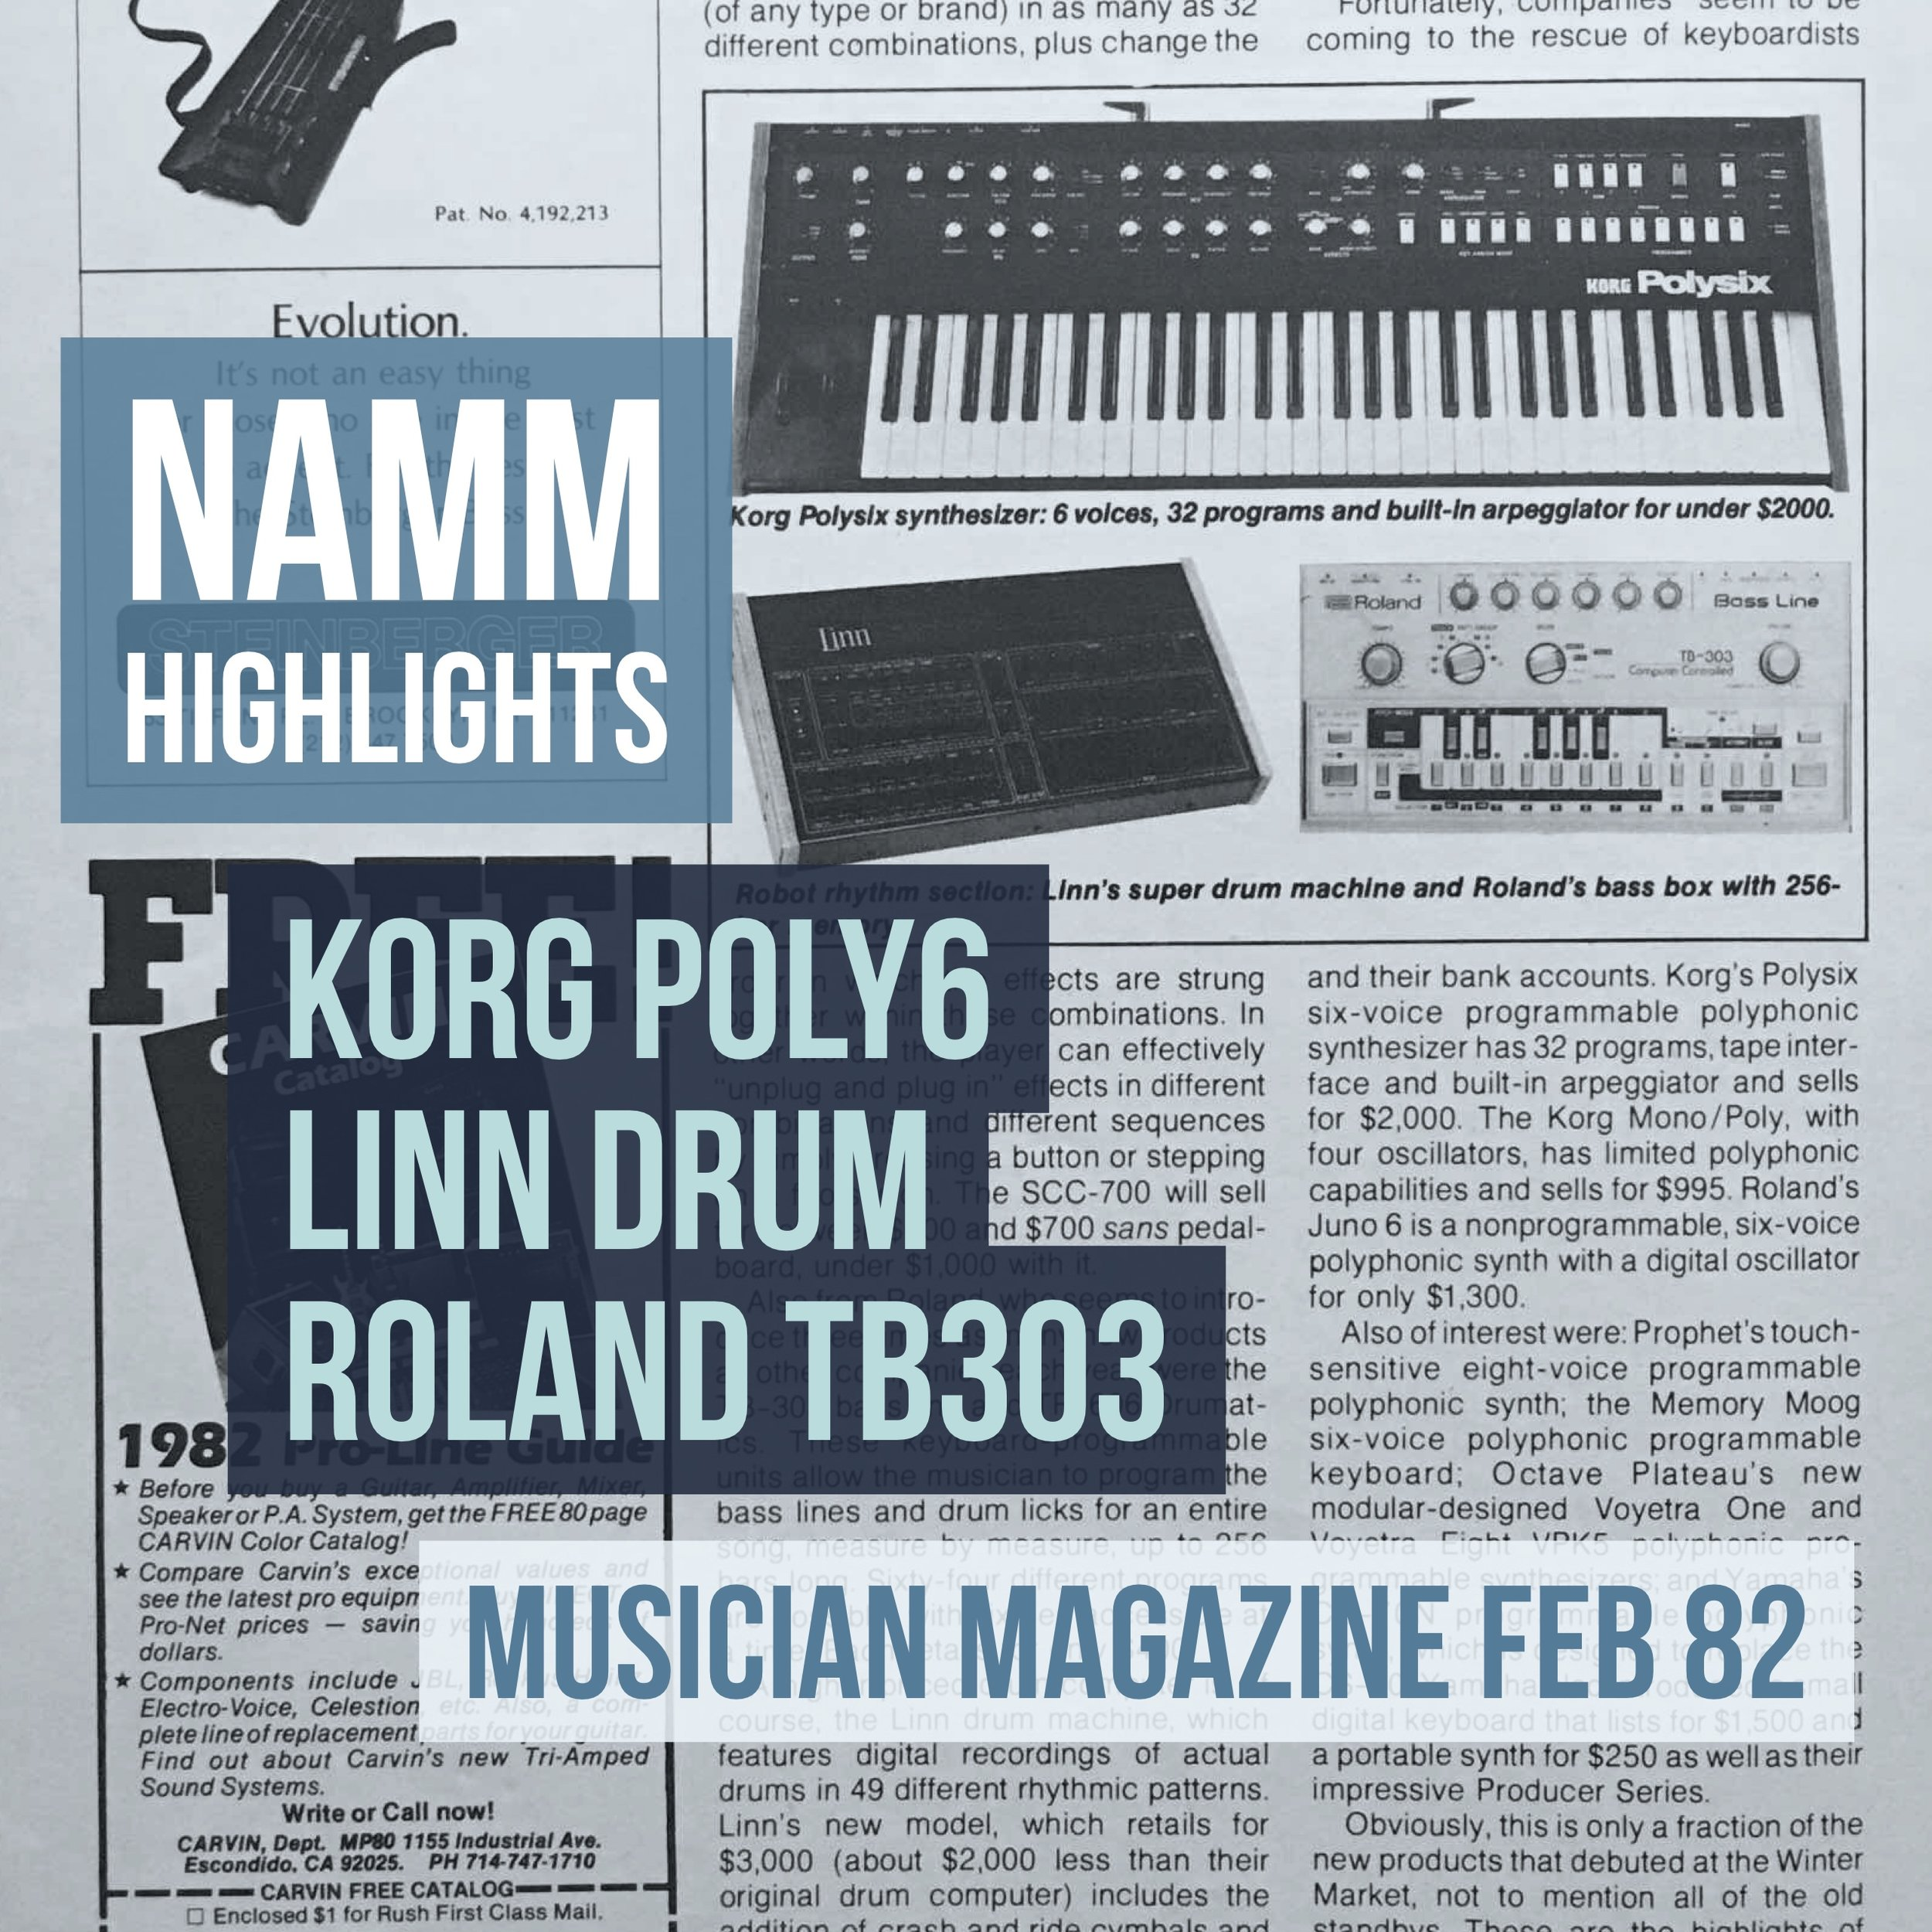 Korg Poly6, Linn Drum and the Roland TB303 all premiere at the '82 National Association of Music Merchants show.